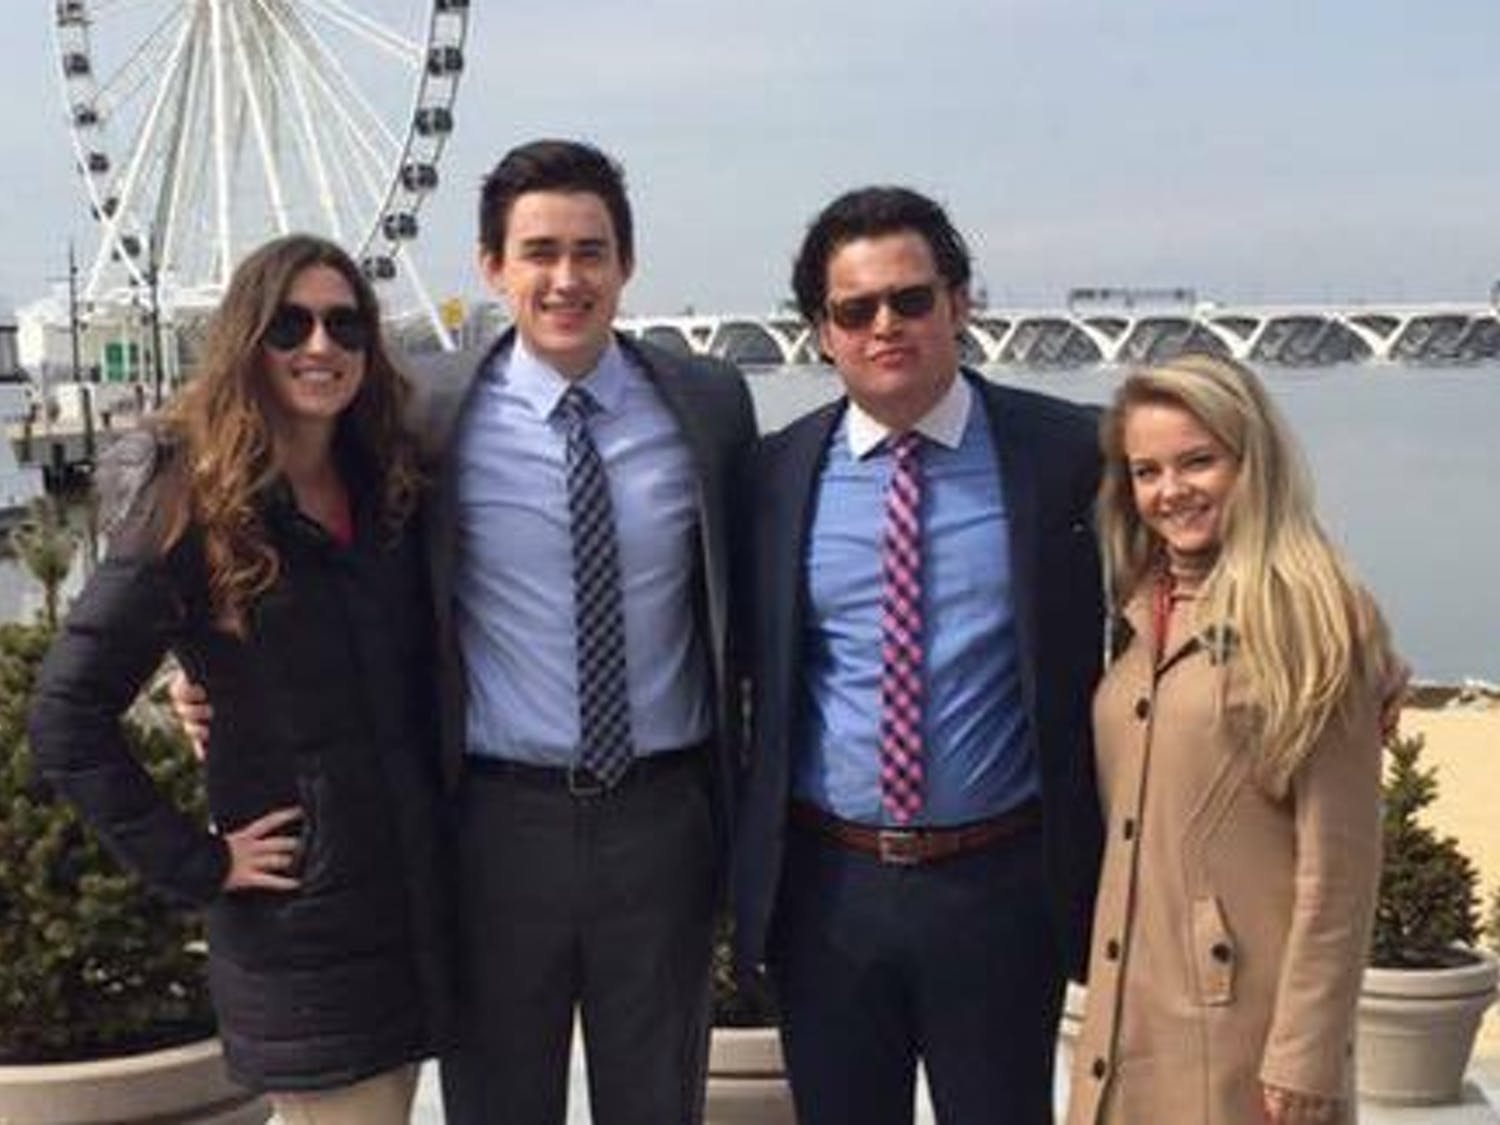 The parents of former UW-Madisonstudent Beau Solomon, who is pictured second from the right, are suing John Cabot University for negligence after their son was found dead in the Tiber River last year.